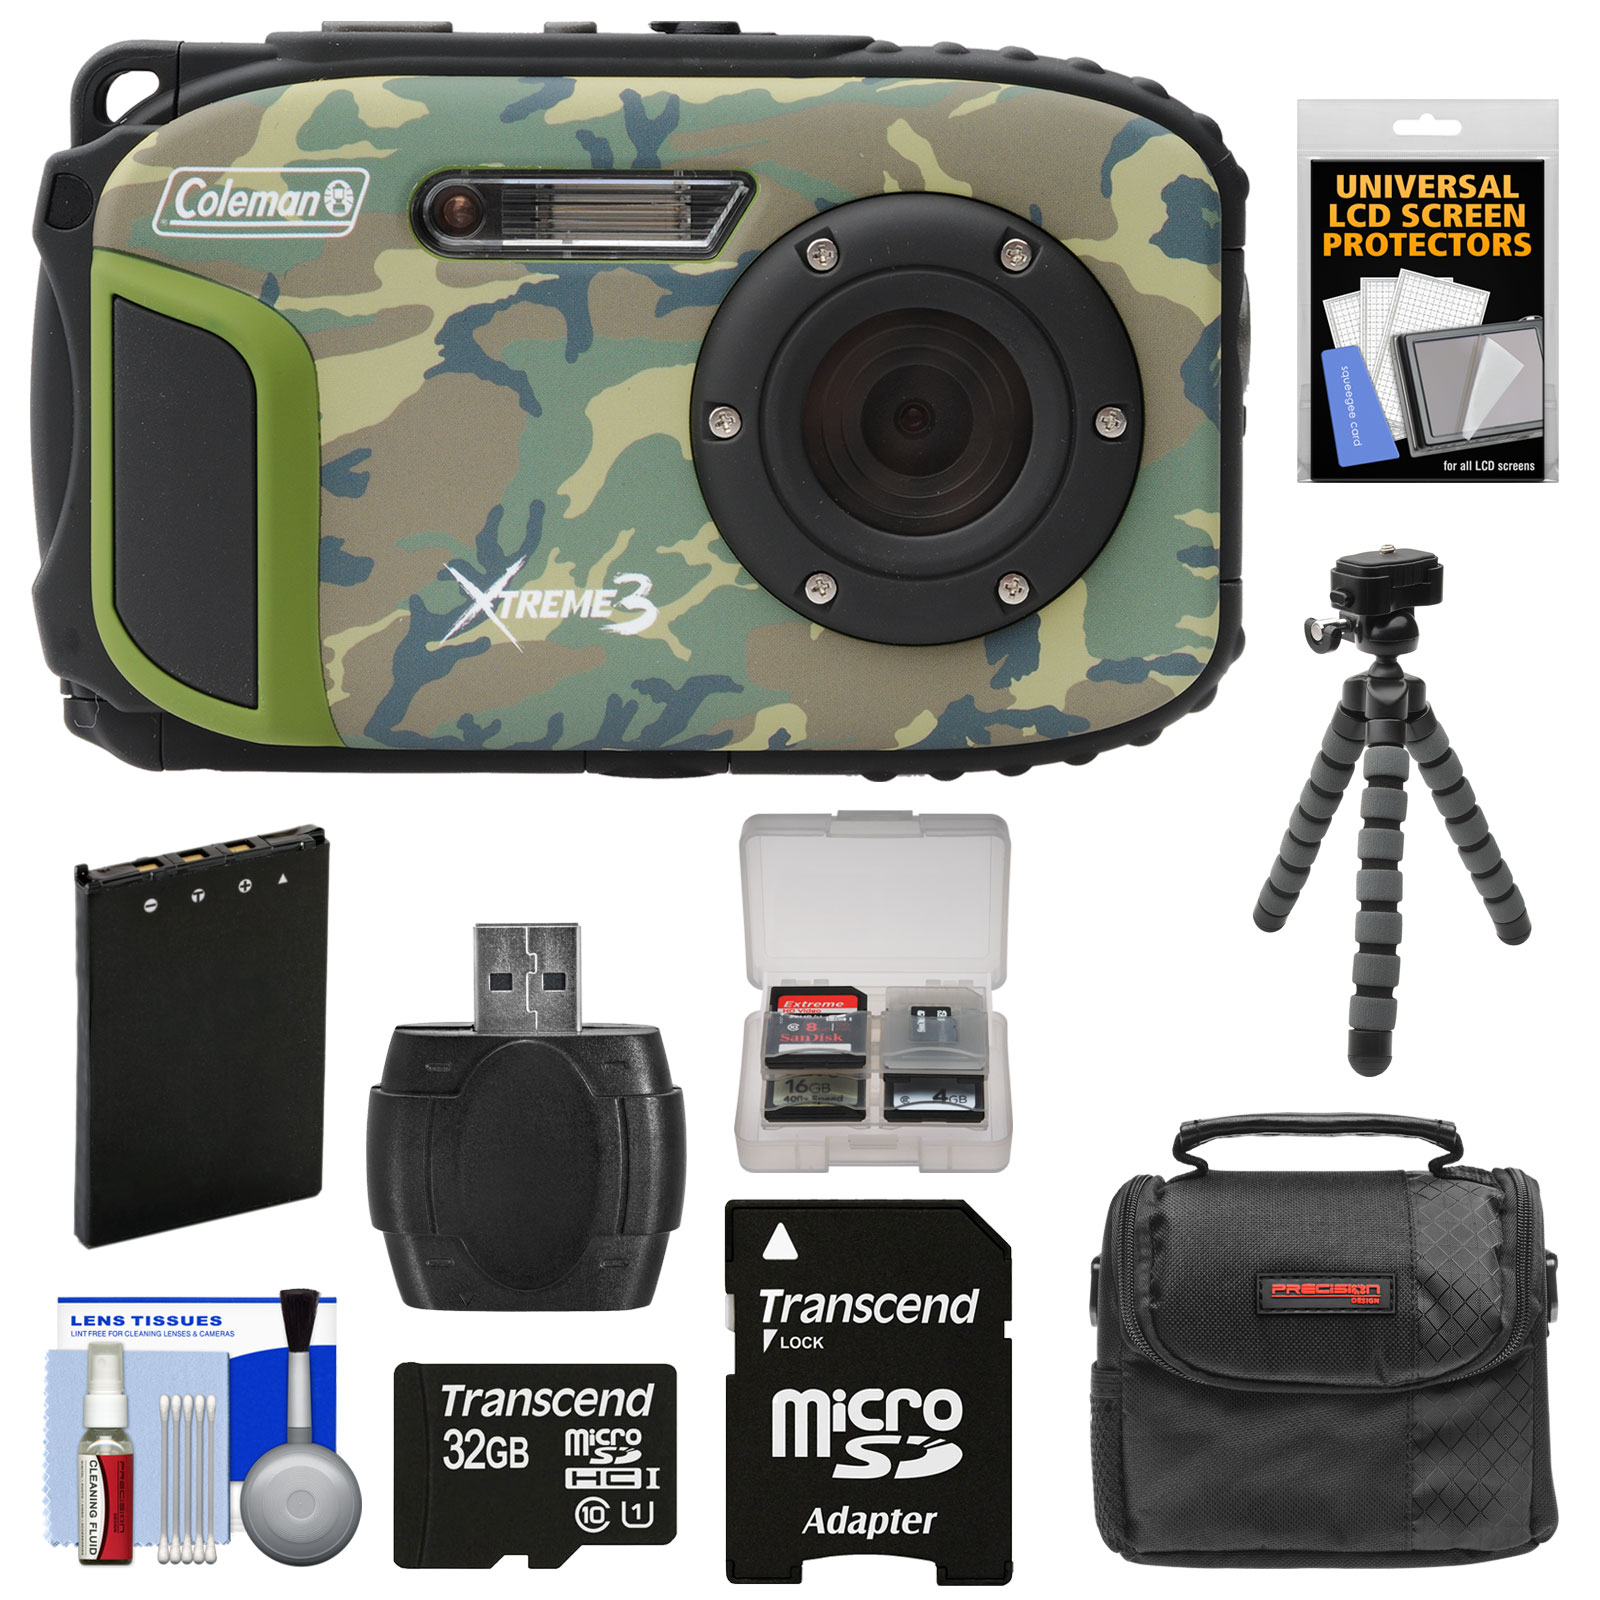 Coleman Xtreme3 C9WP Shock & Waterproof 1080p HD Digital Camera (Blue) with 32GB Card + Battery + Case + Flex Tripod +... by Coleman